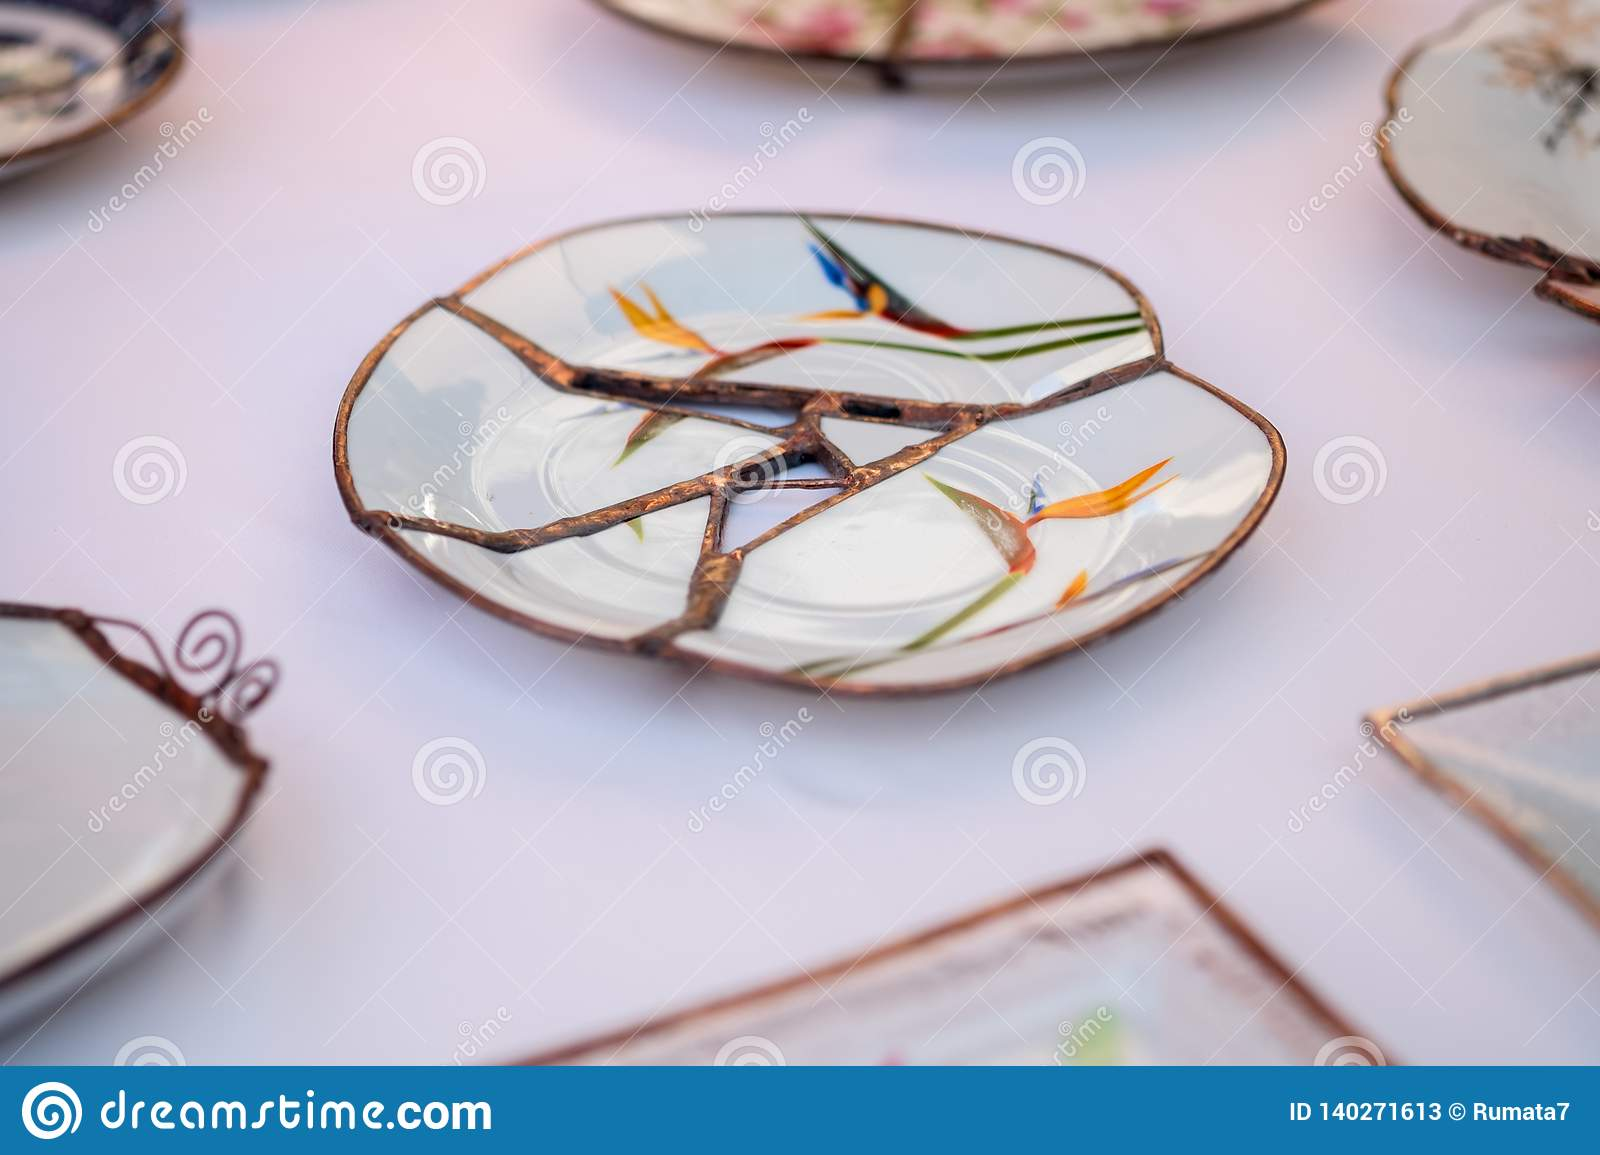 Kintsugi Style Handcrafted Plate Sold At Handicraft Market Kintsugi Is The Japanese Art Of Repairing Broken Pottery Stock Image Image Of Traditional Copy 140271613